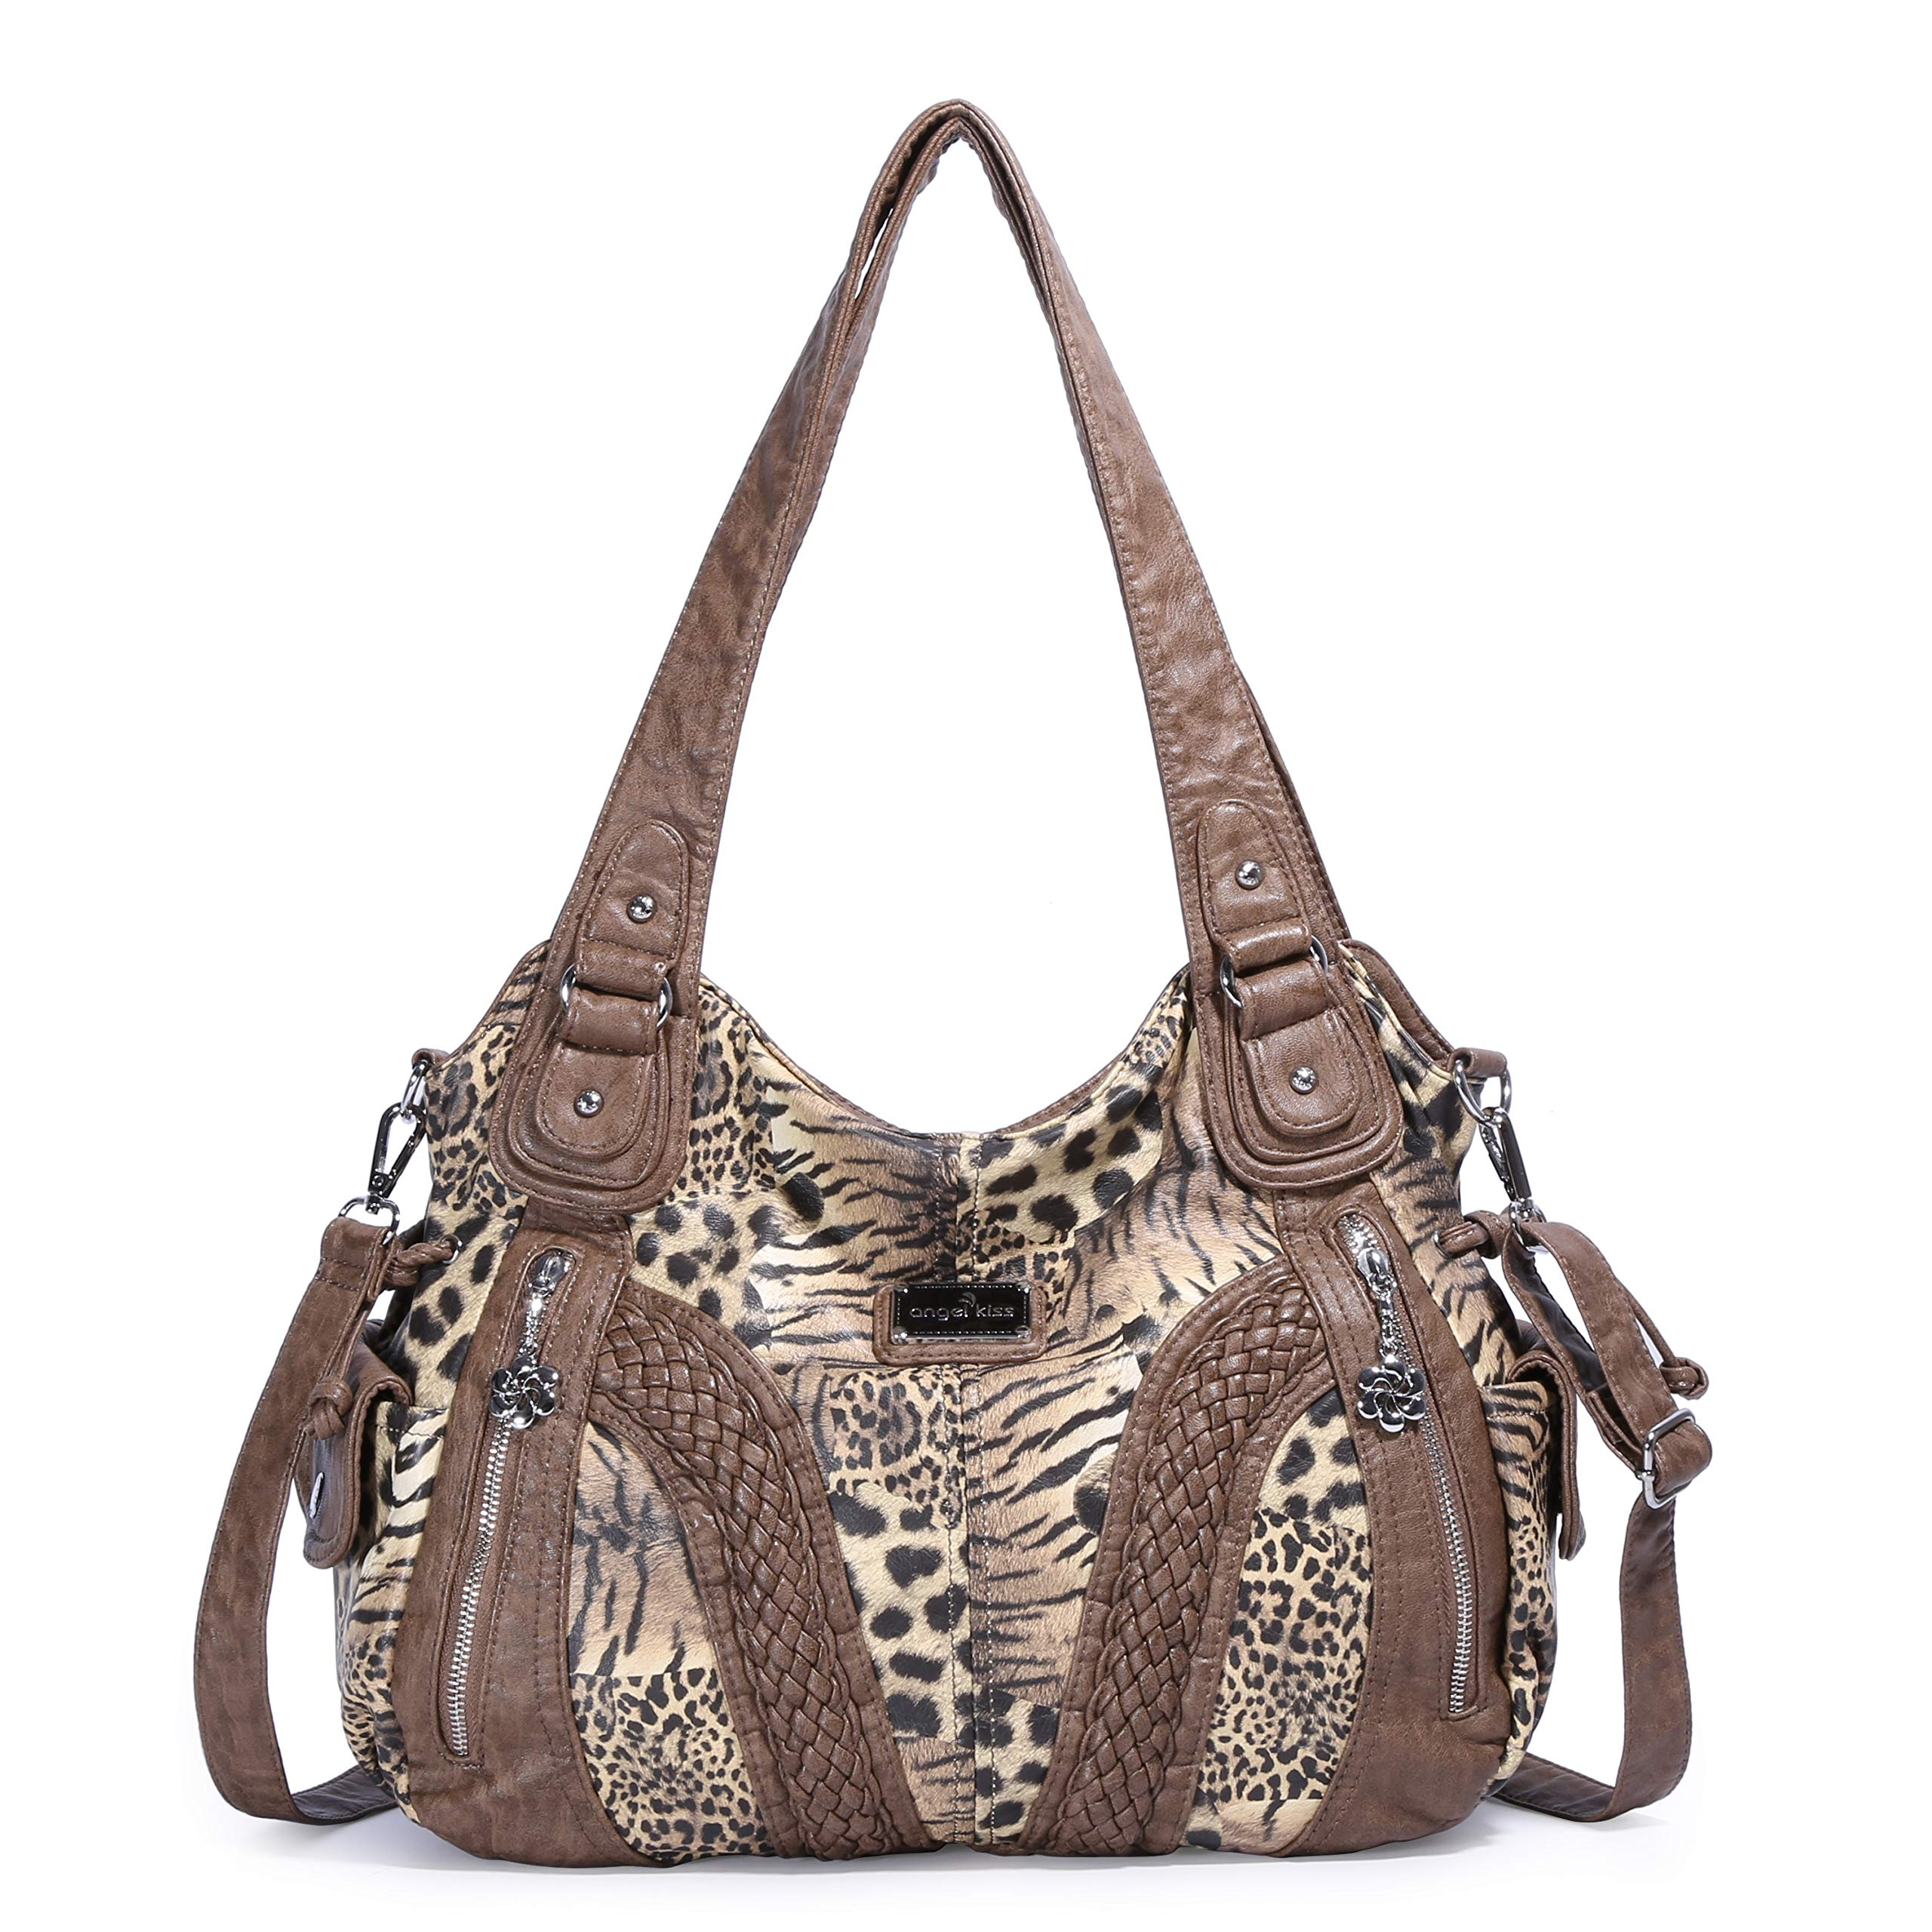 Angelkiss Women Top Handle Satchel Handbags Shoulder Bag Messenger Tote Washed Leather Purses Bag ... (Brown-Leopard) by Angel Kiss